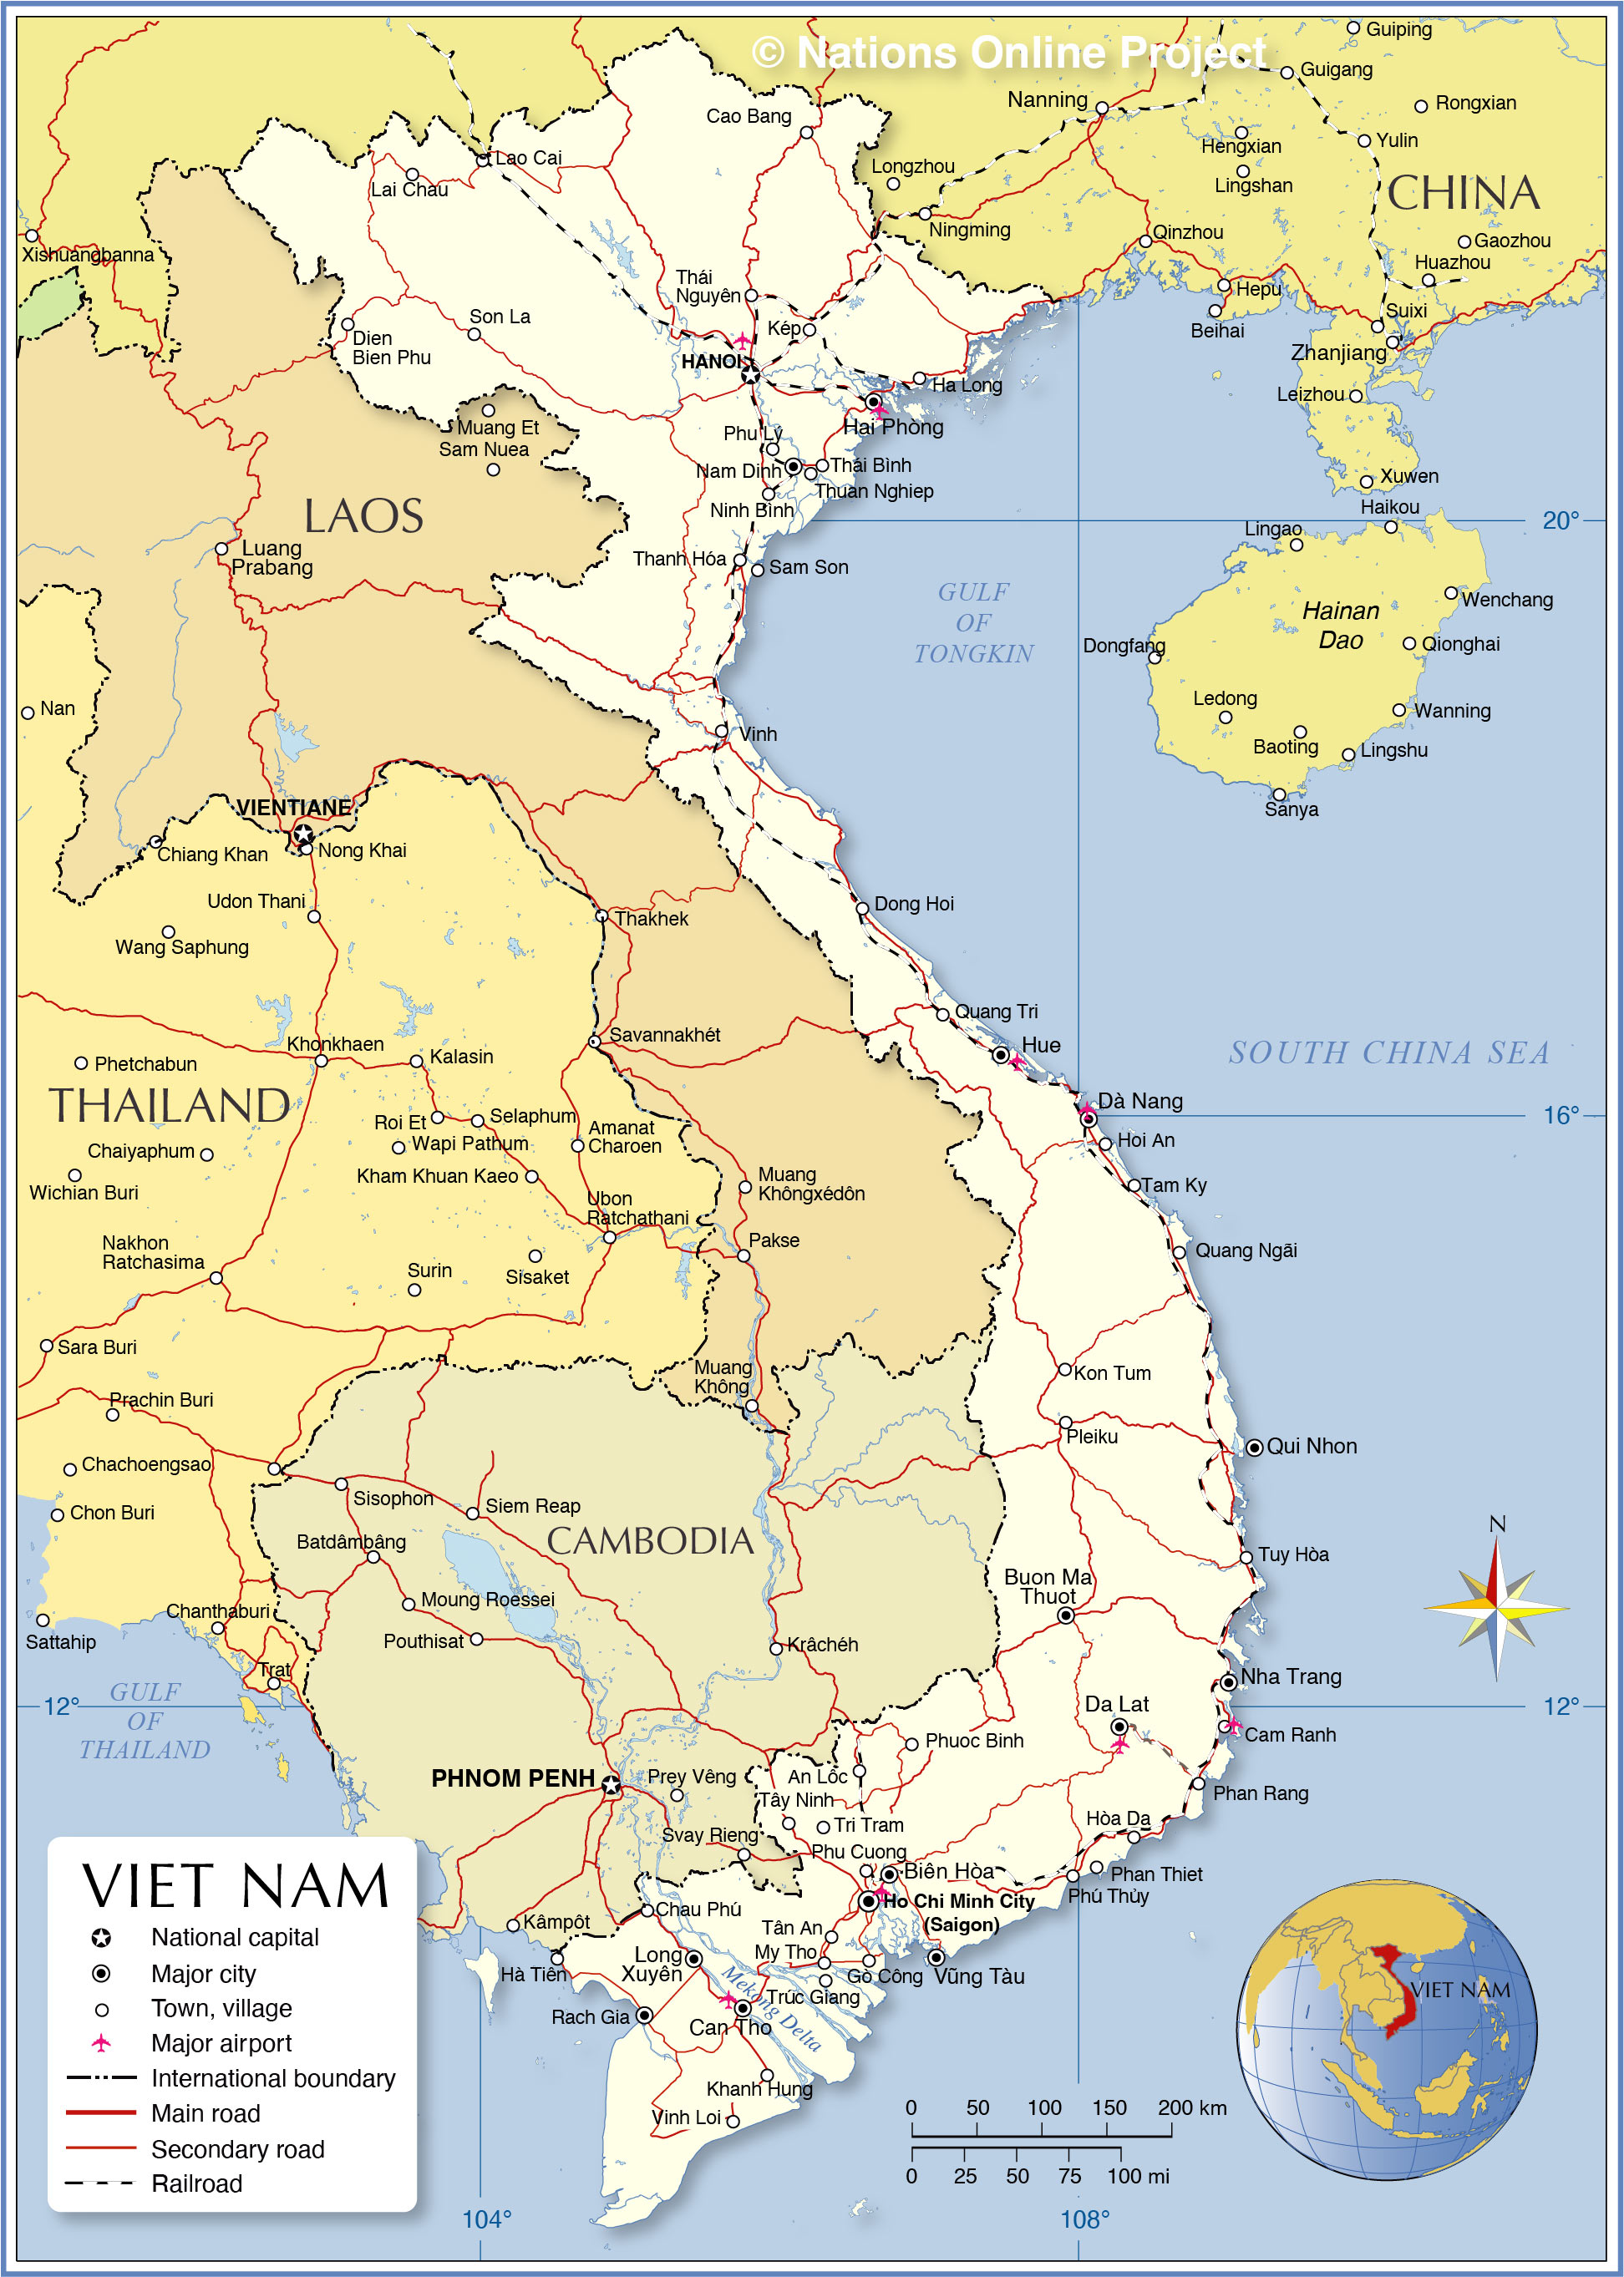 Viet Nam Map Political Map of Vietnam   Nations Online Project